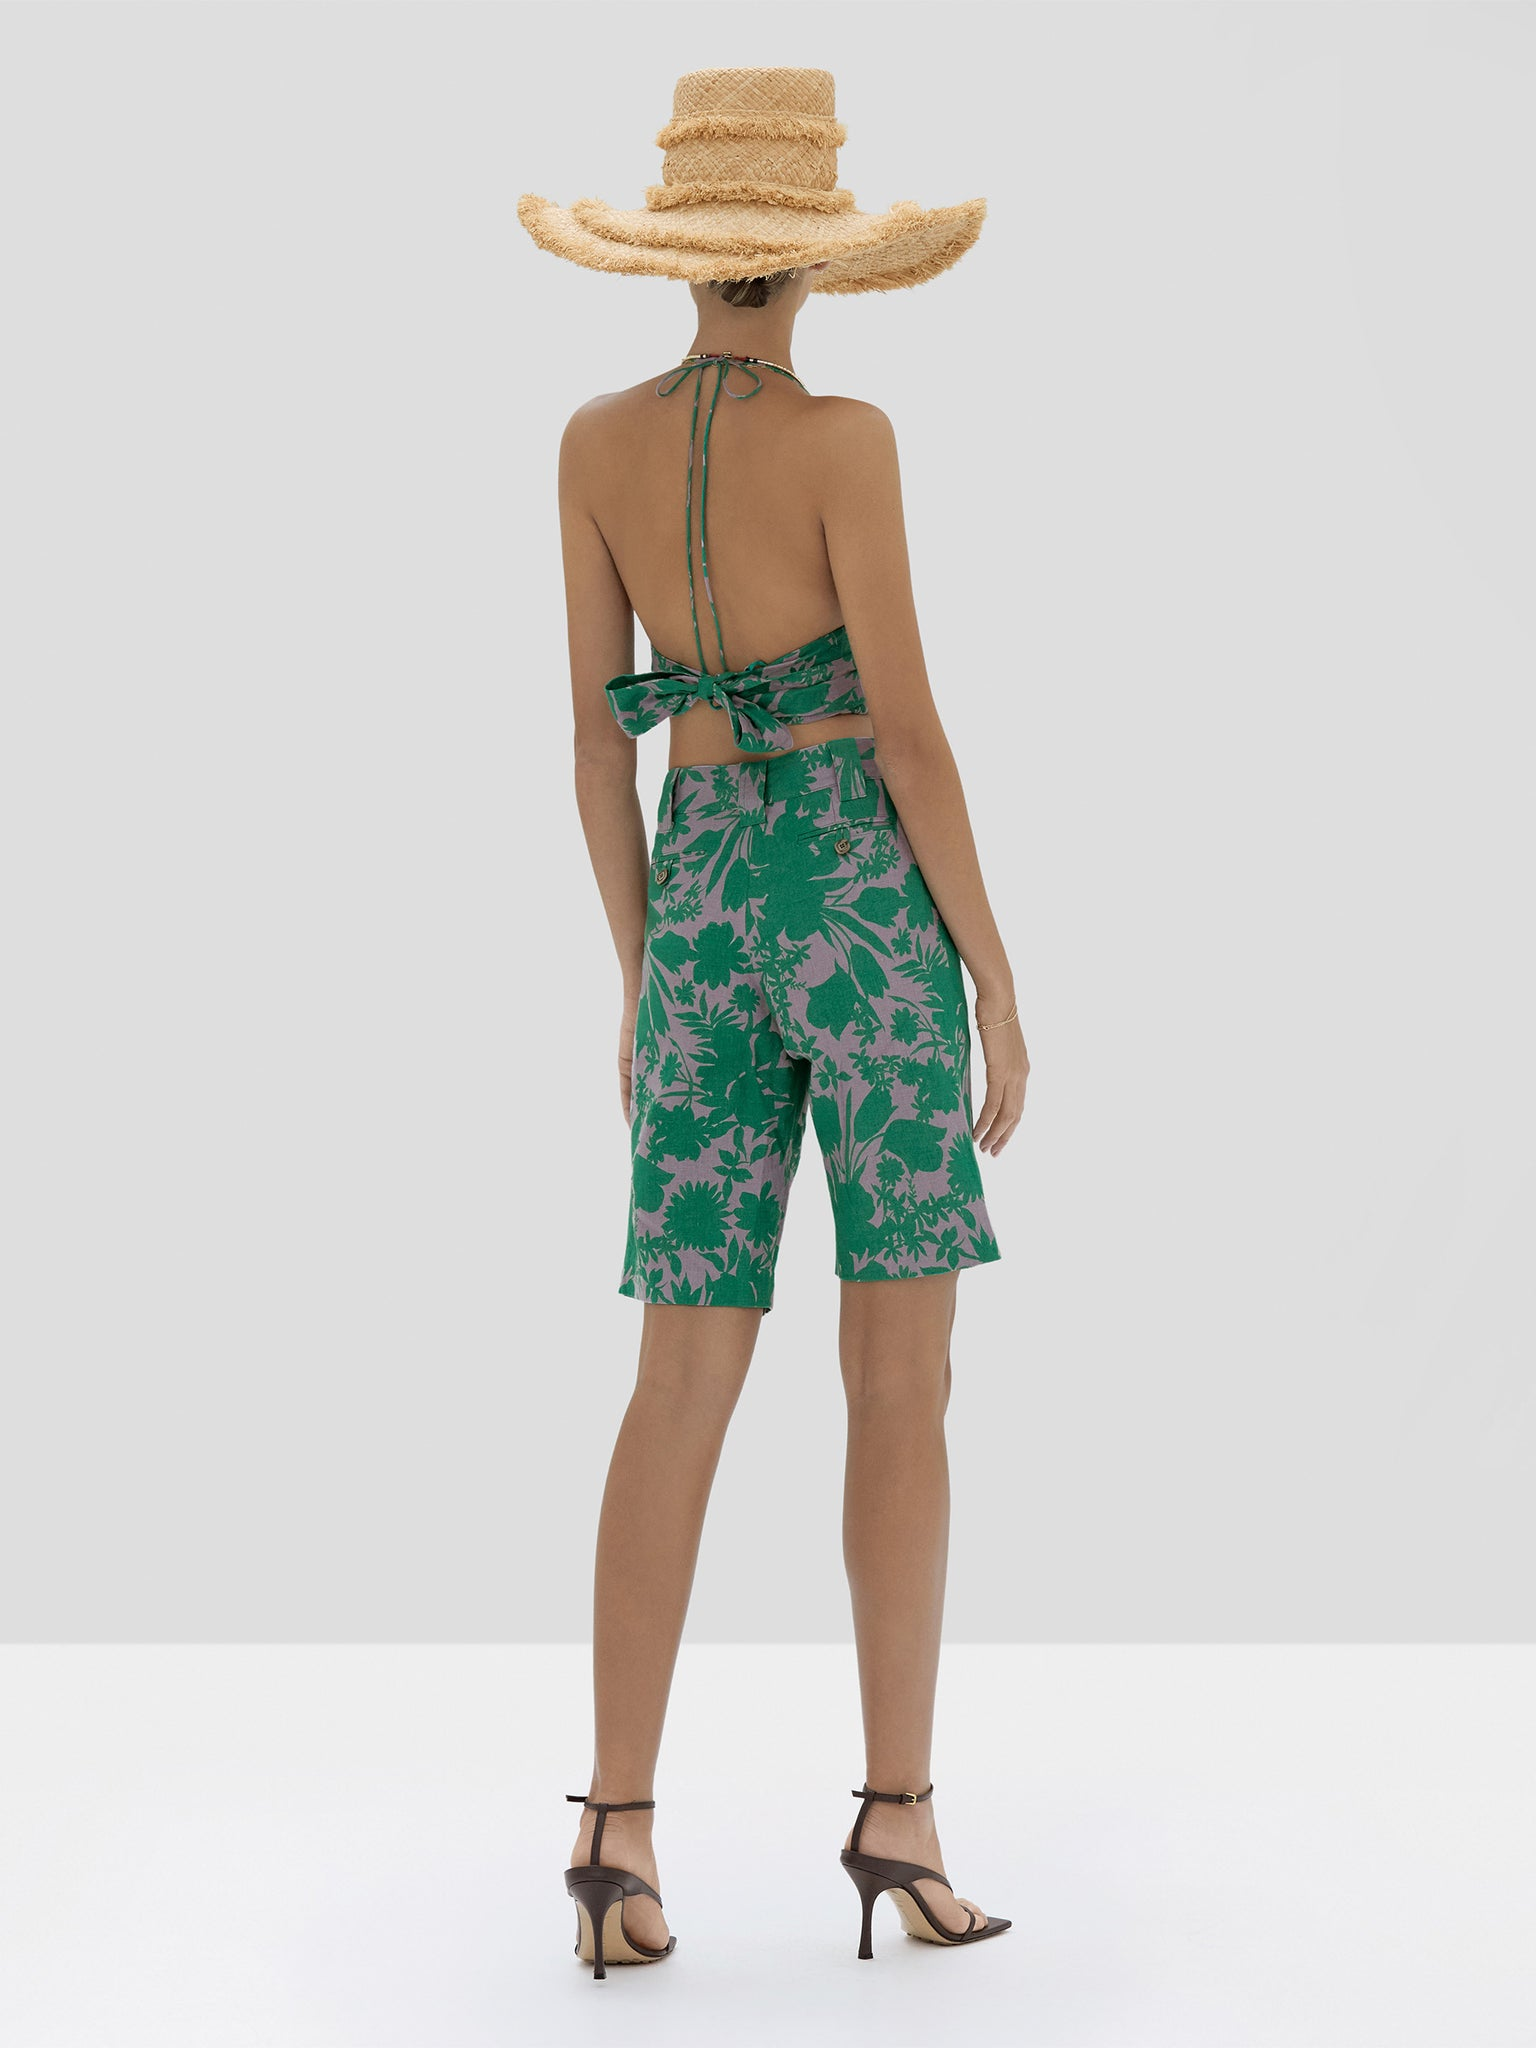 The Gaila Top in Emerald Botanical from the Spring Summer 2020 - Rear View